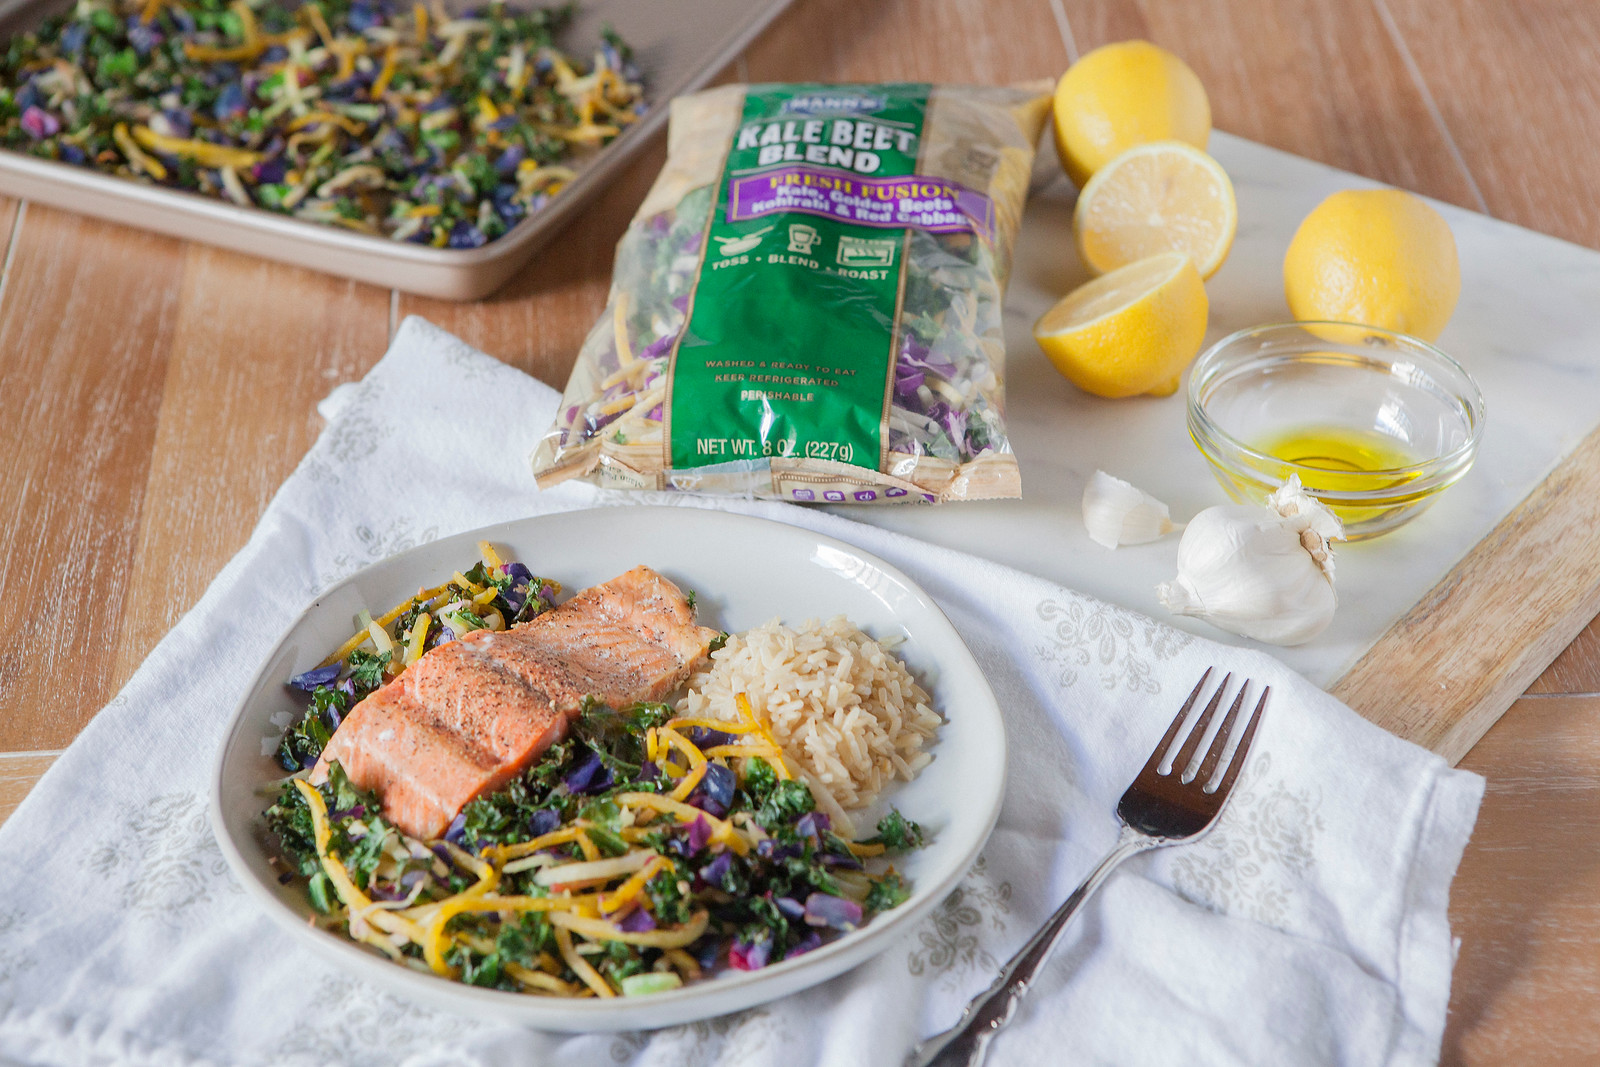 0002_NutritionTwins-kale-beet-salmon